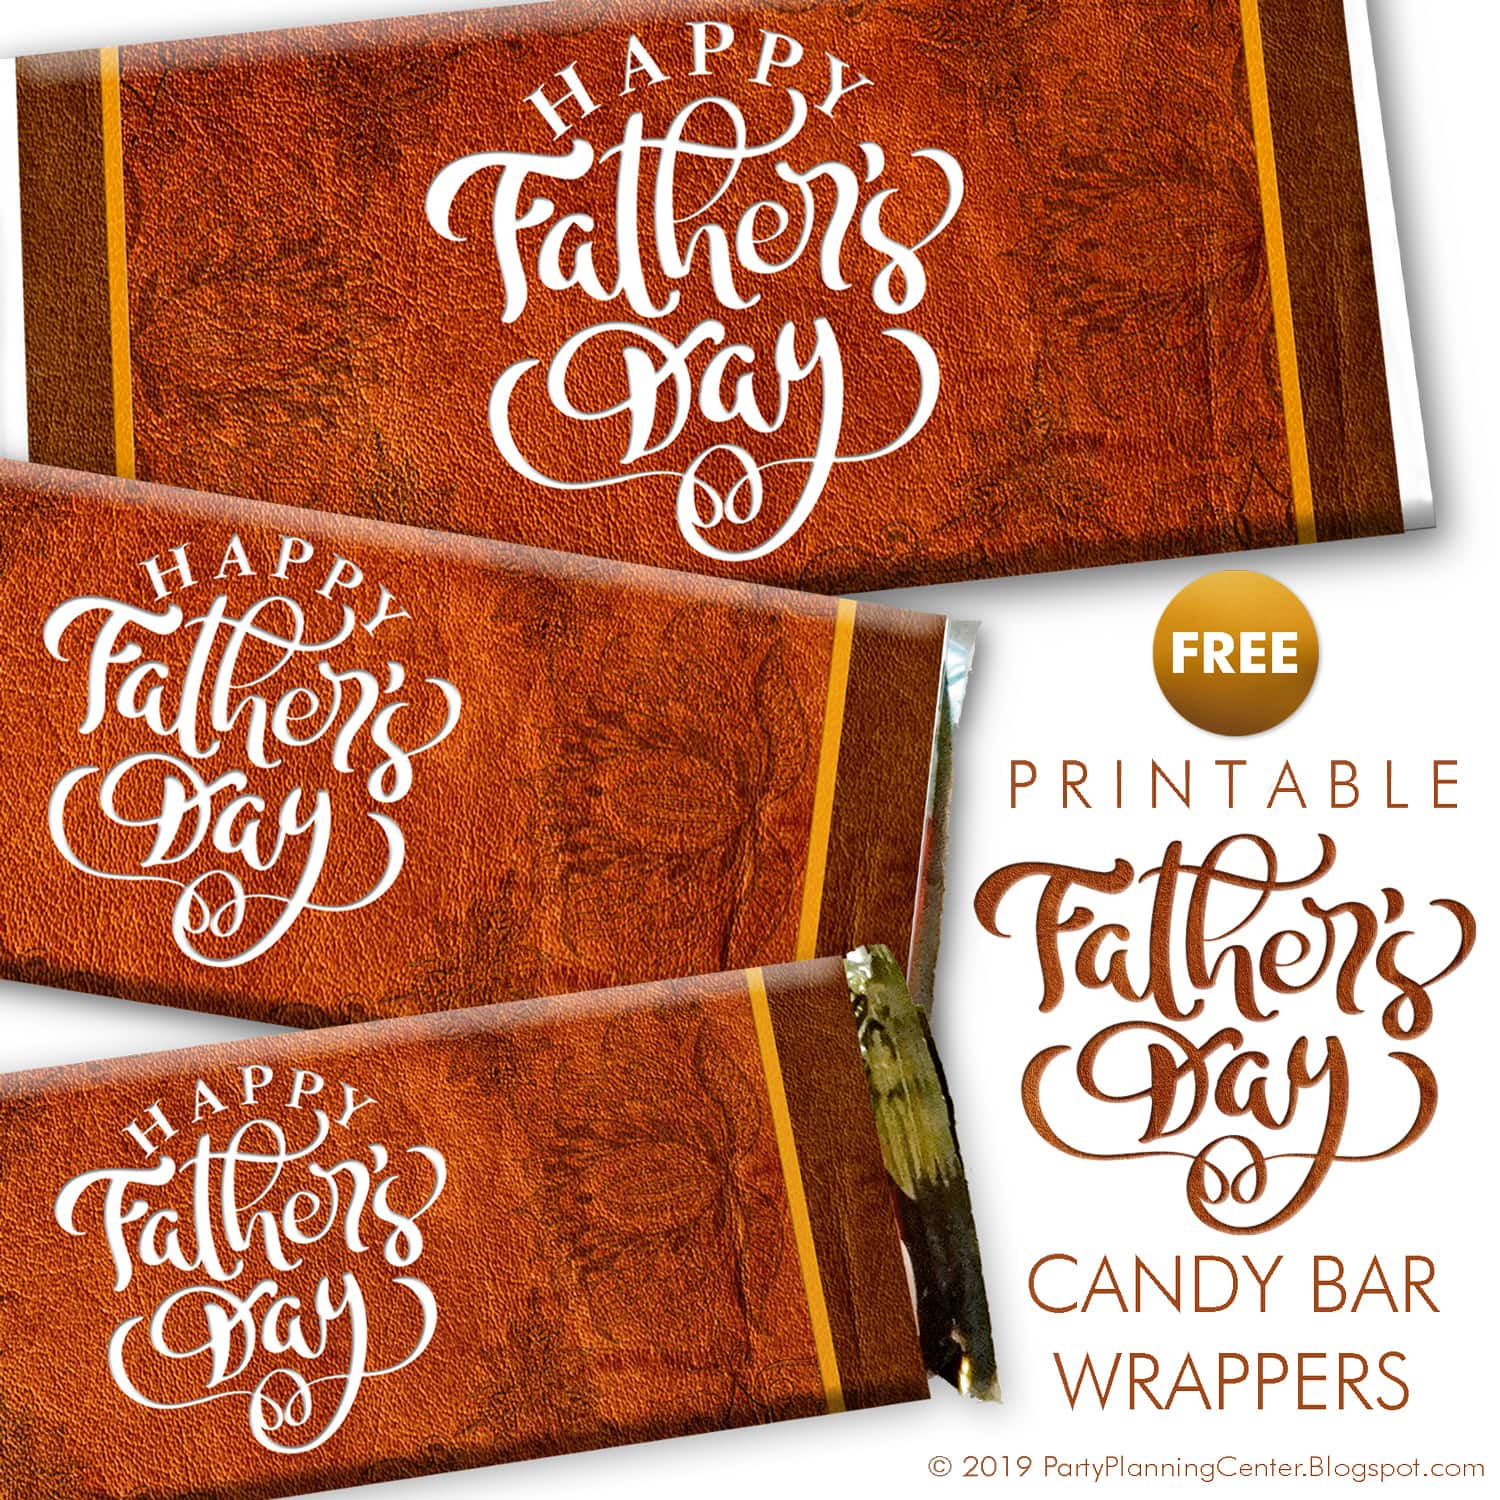 FREE Father's Day Chocolate Wrappers